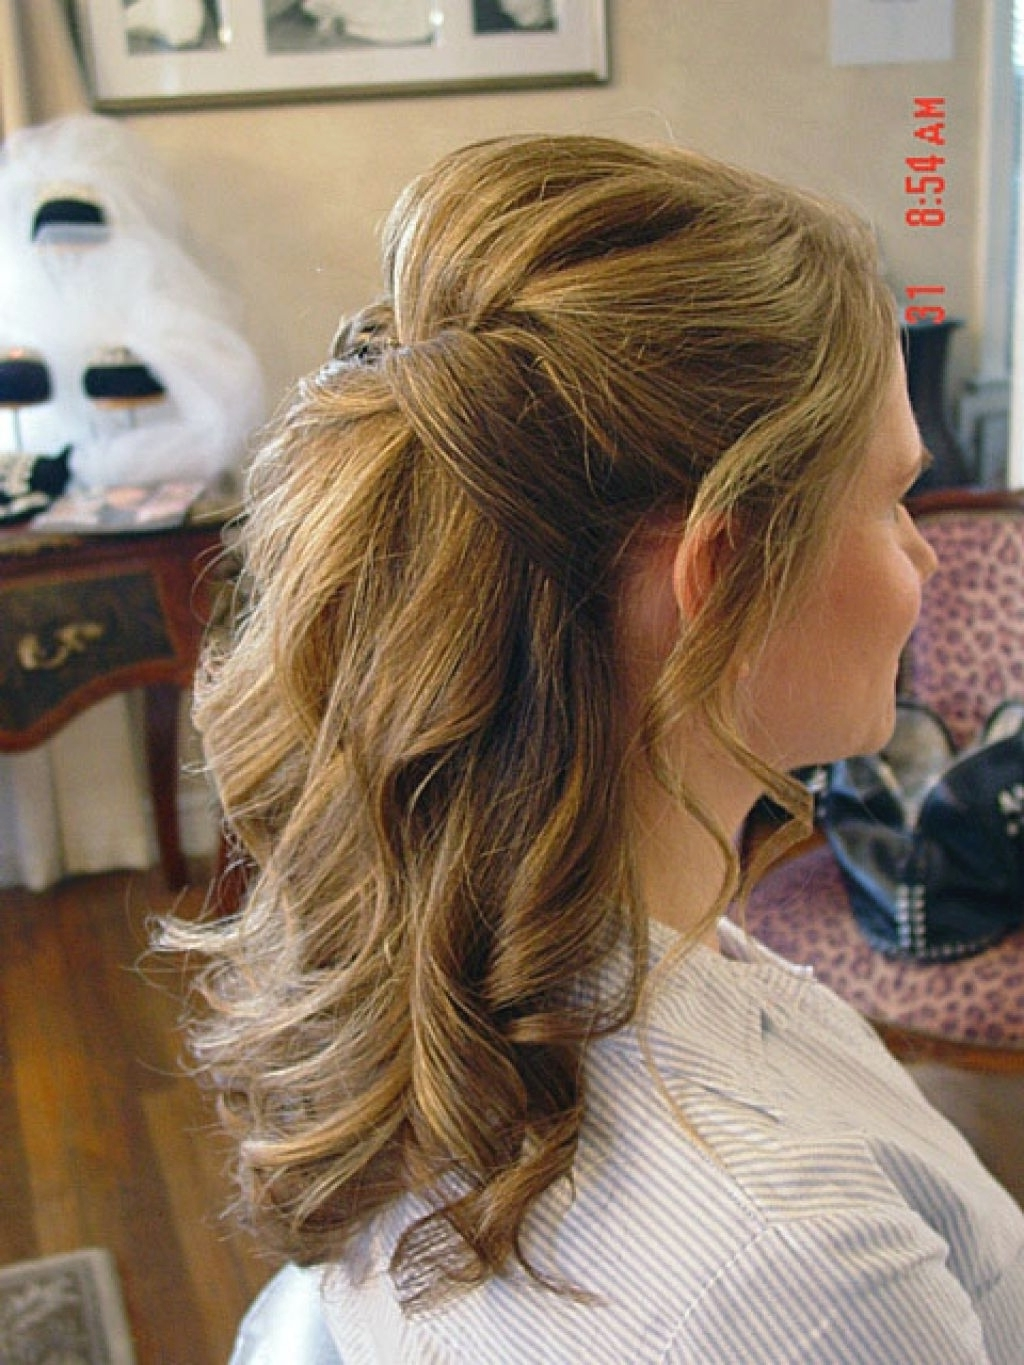 Well Liked Half Up Medium Length Wedding Hairstyles Regarding Wedding Hair Half Up Half Down Mid Length (Gallery 12 of 15)